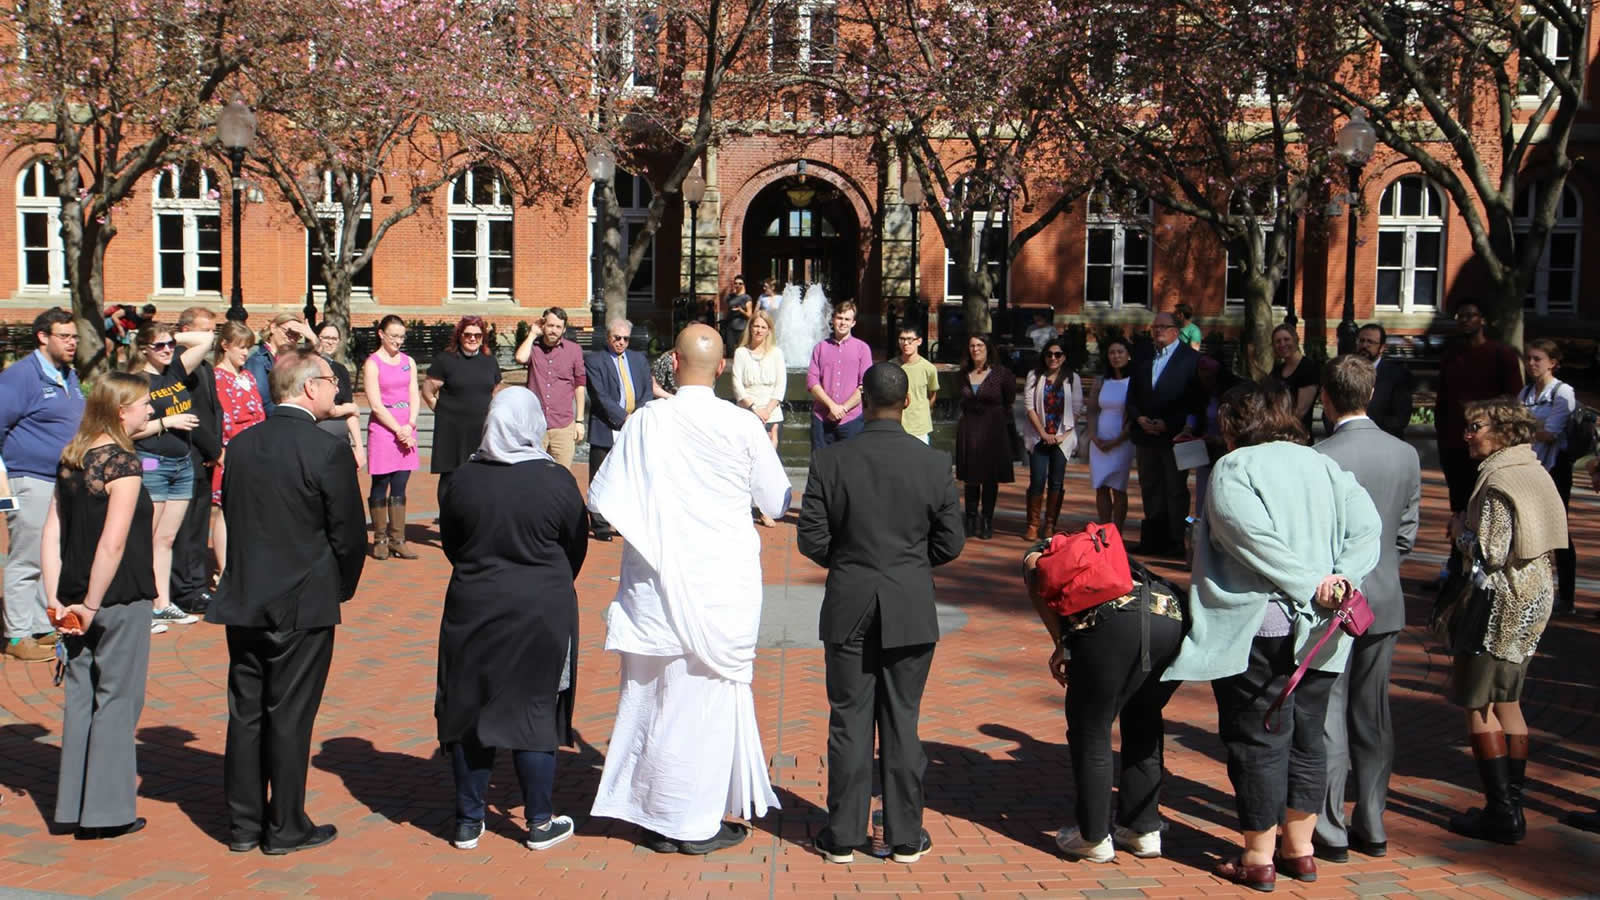 Campus Ministry and Center for Social Justice Chaplains Tea in Dahlgren Quad